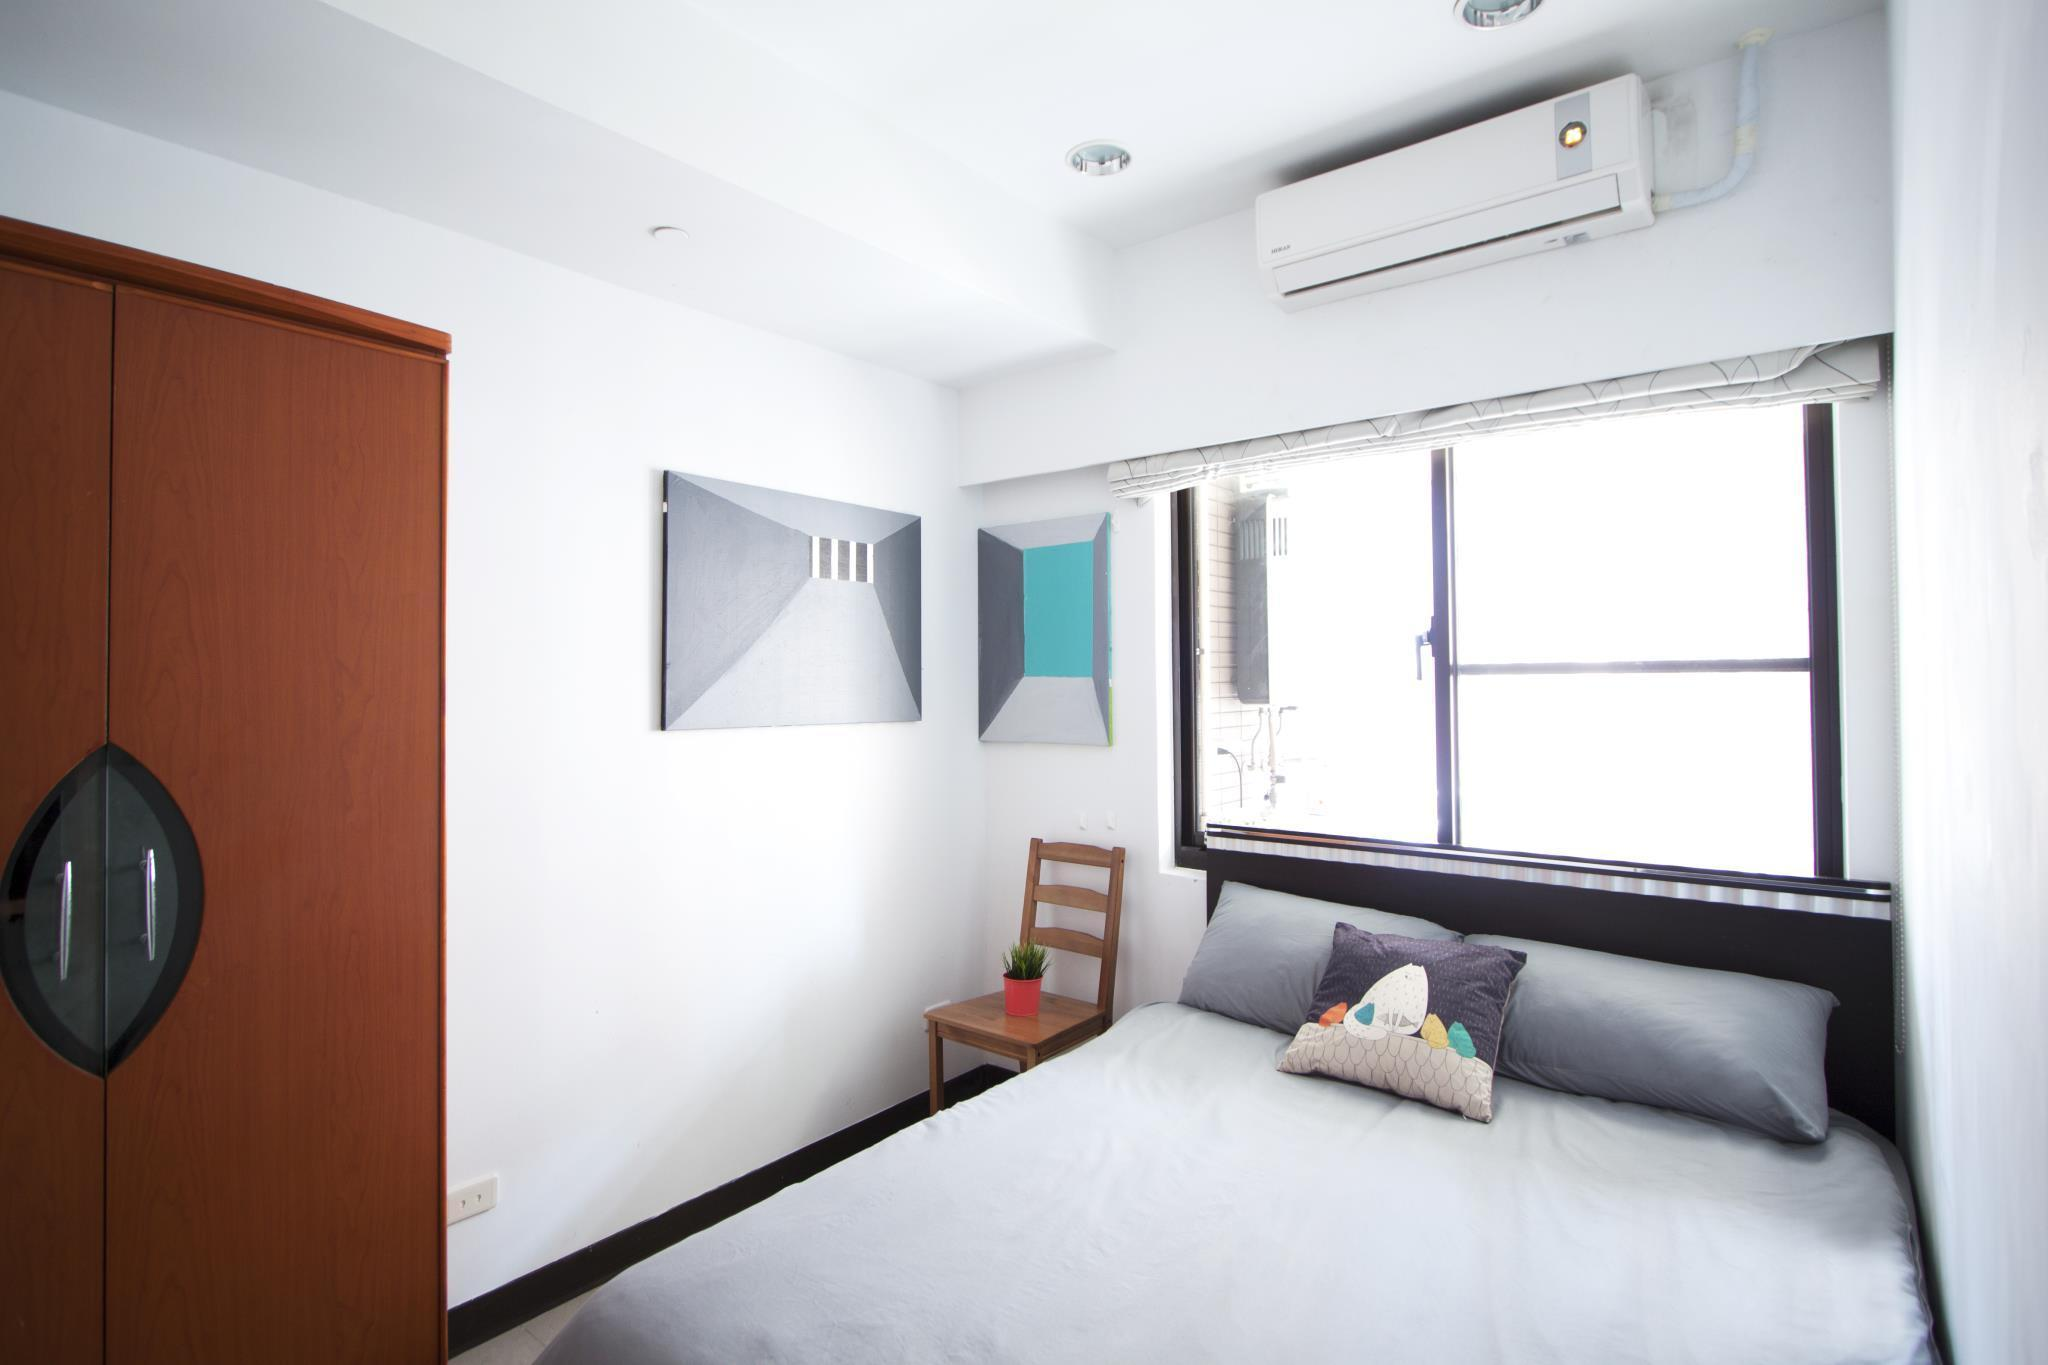 Two Bedrooms With Living Room